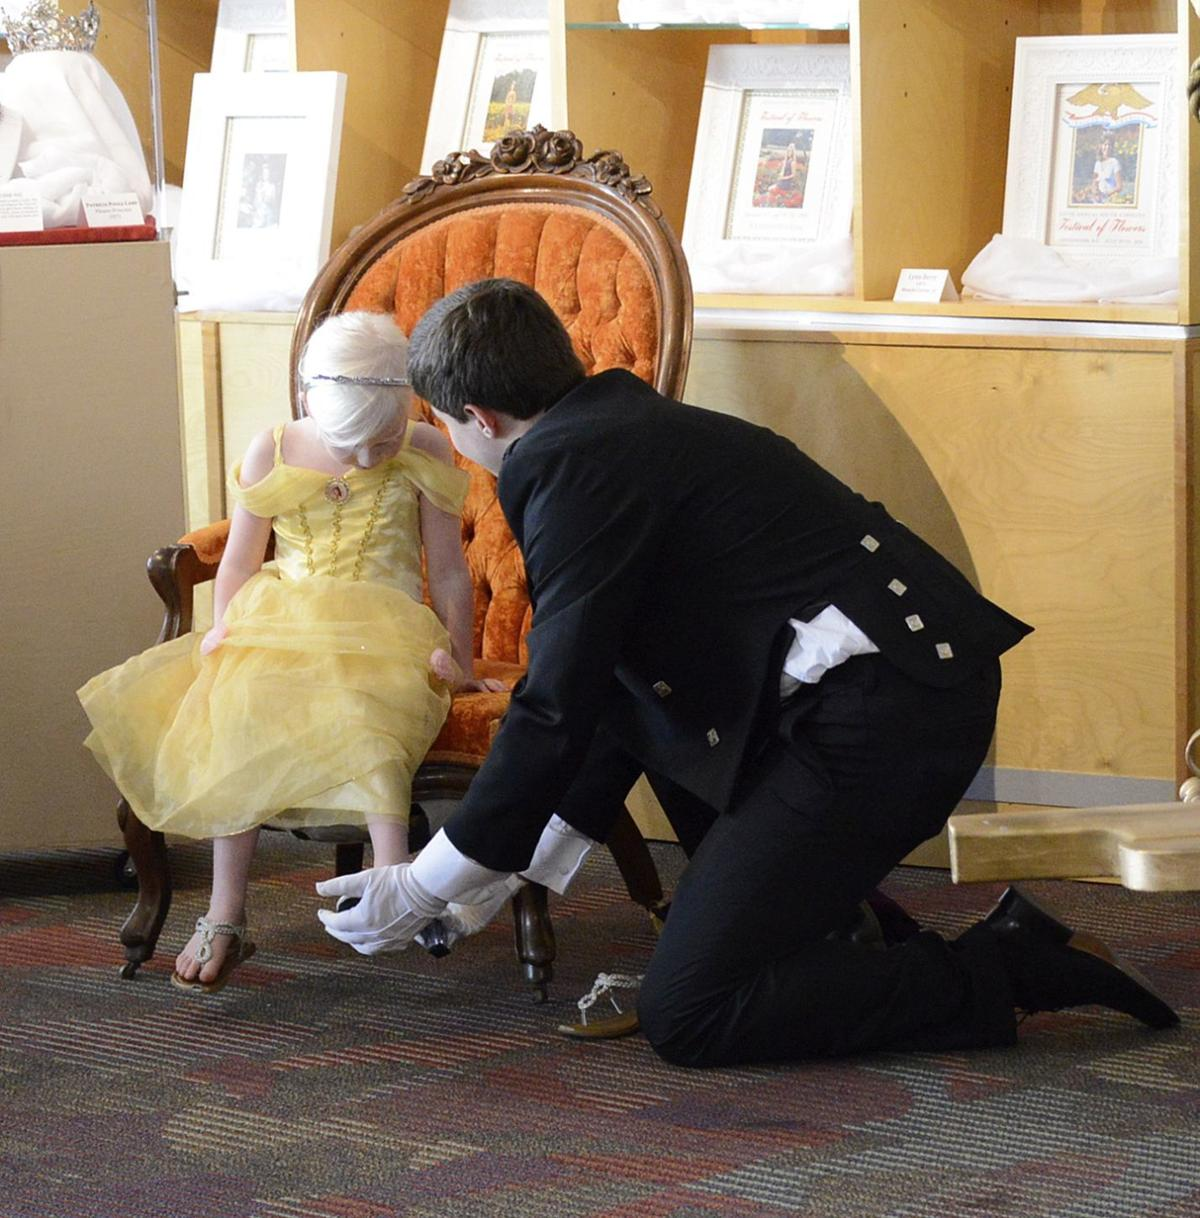 Trying on a glass slipper